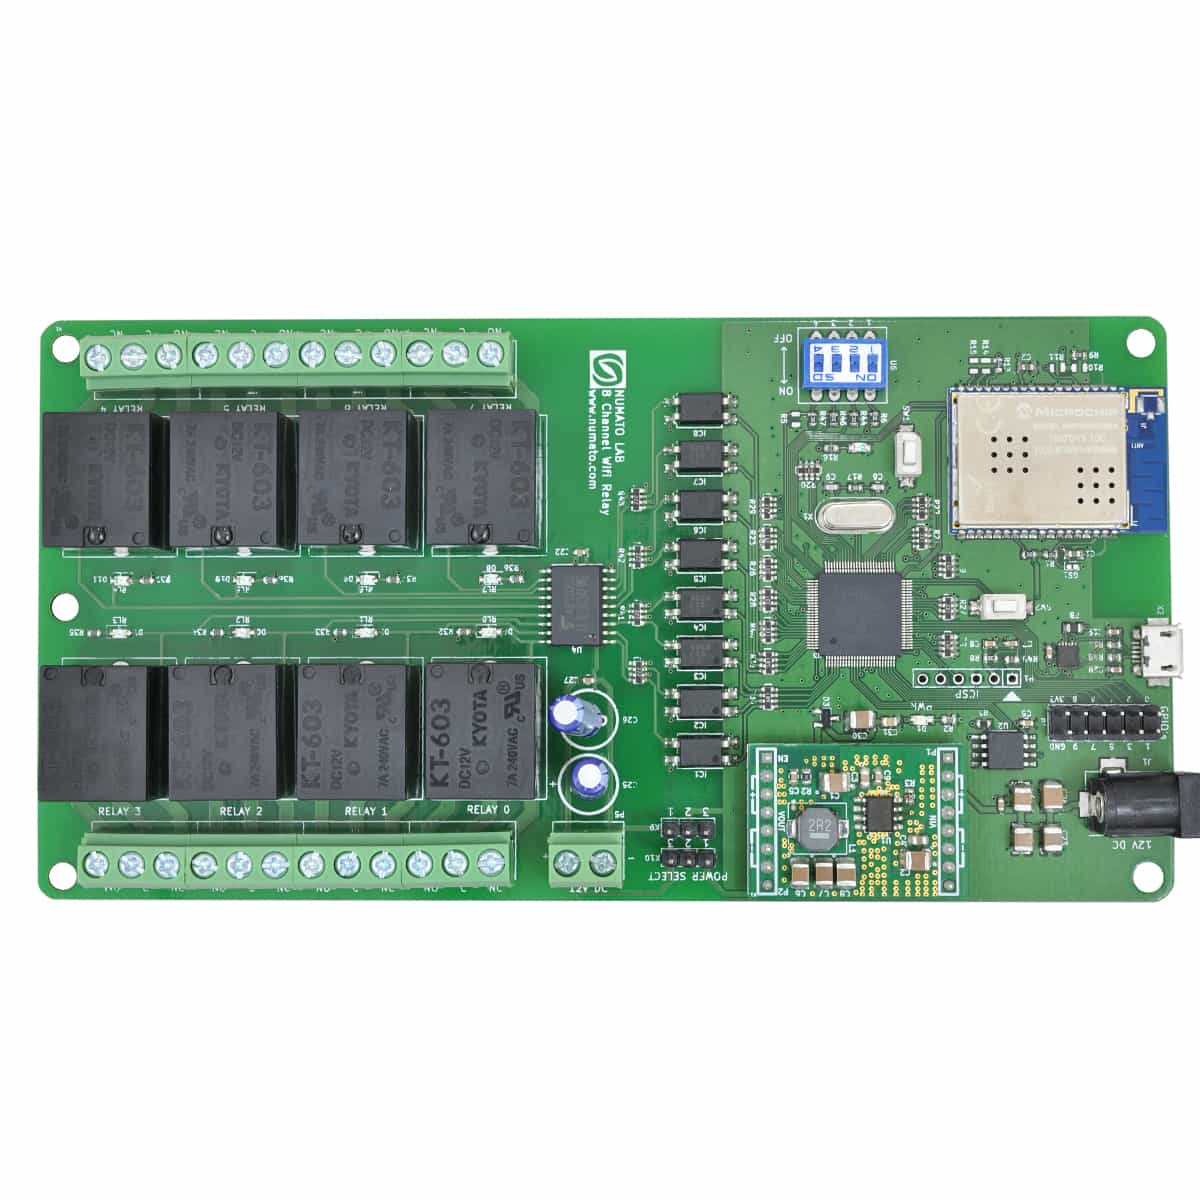 8 Channel Wifi Relay Module With Gpio Analog Inputs Numato Lab Solid State Canada